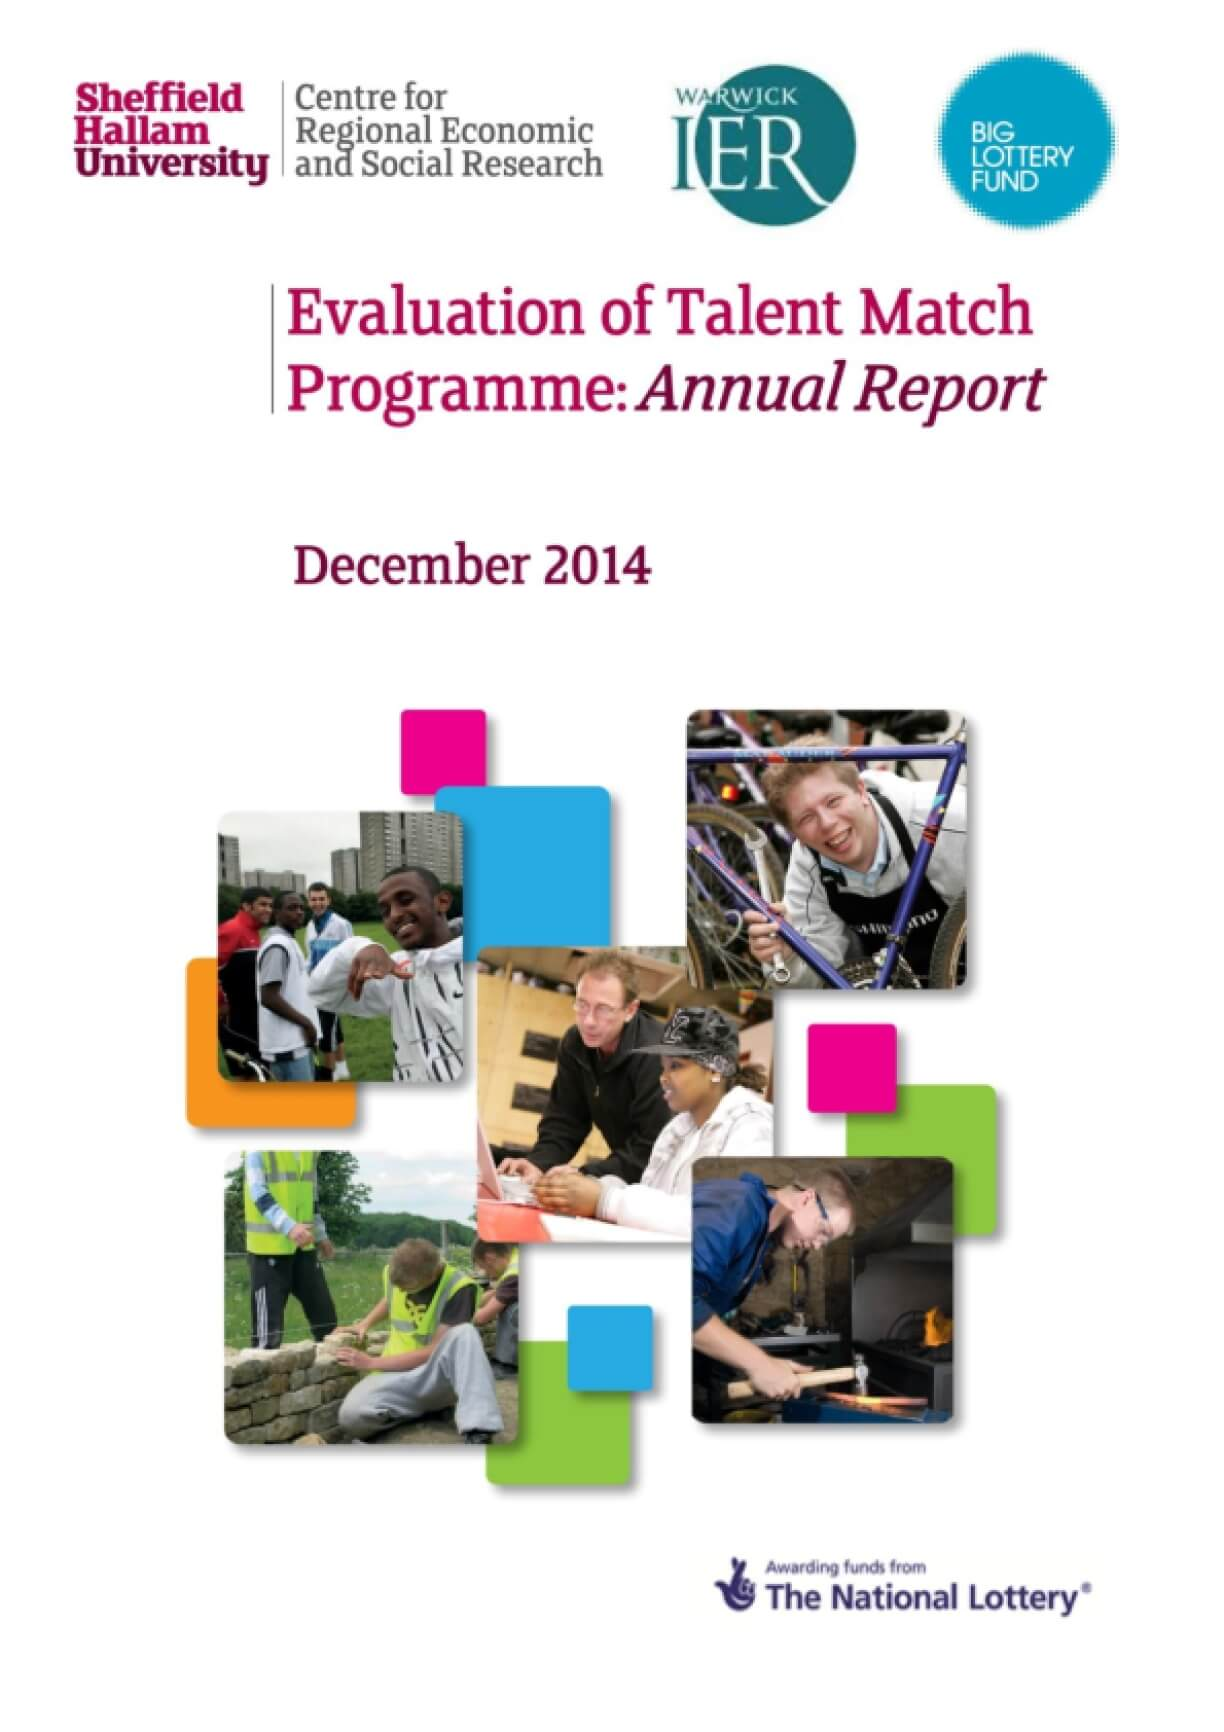 Evaluation of Talent Match Programme: Annual Report